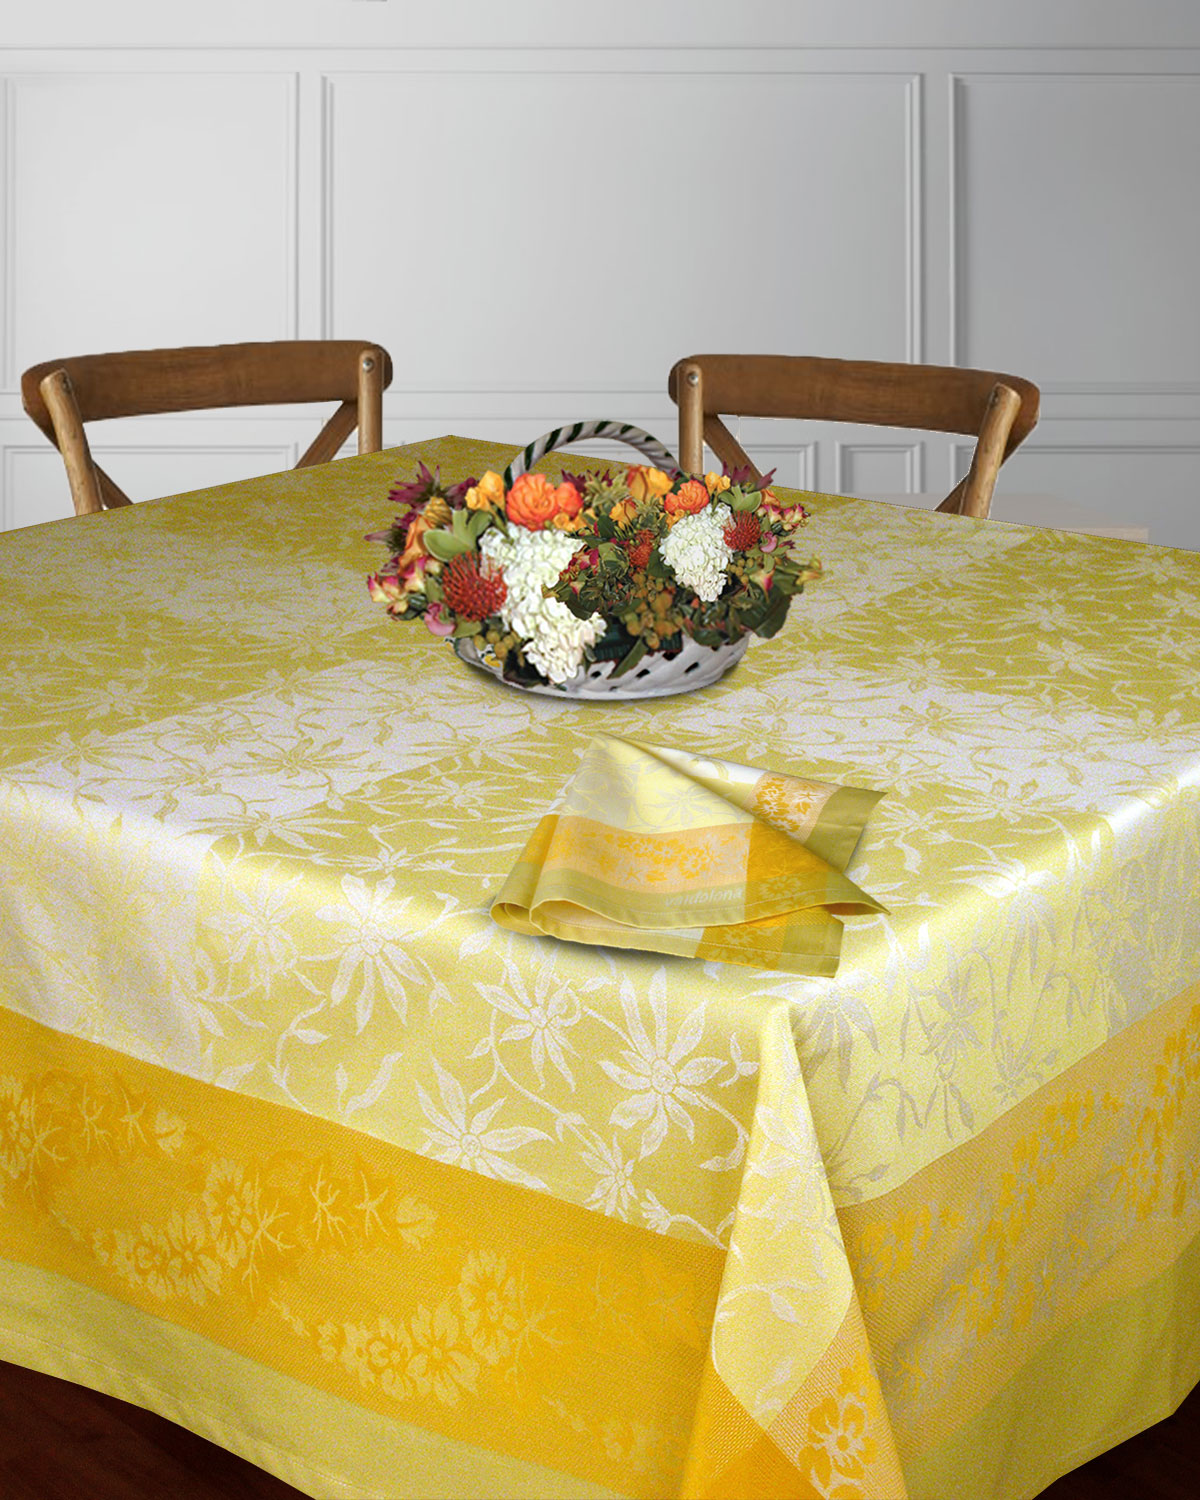 Table Linens Artisan Gold, Vanilla, Olive Green - Made in Italy